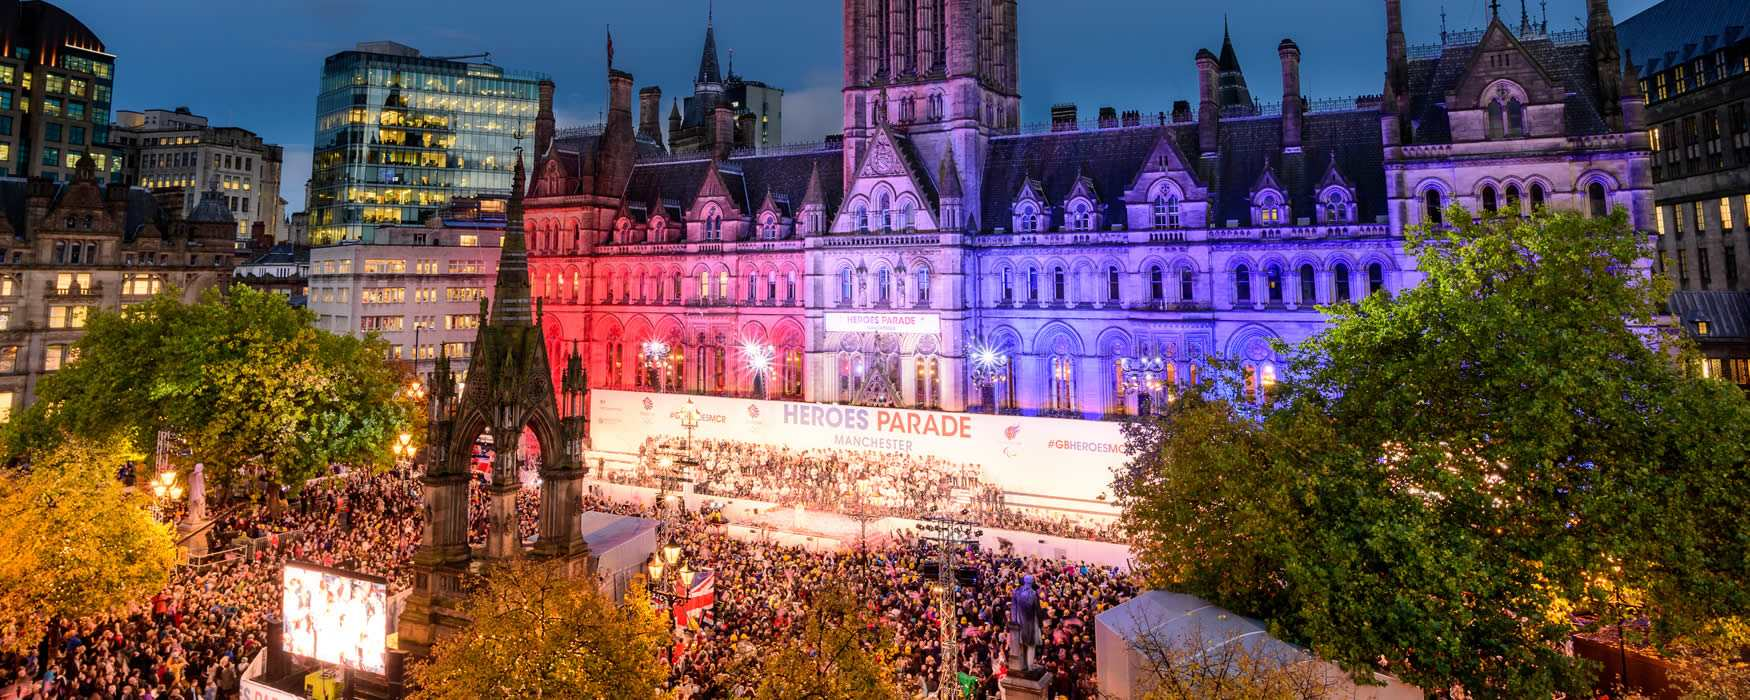 Events in Manchester